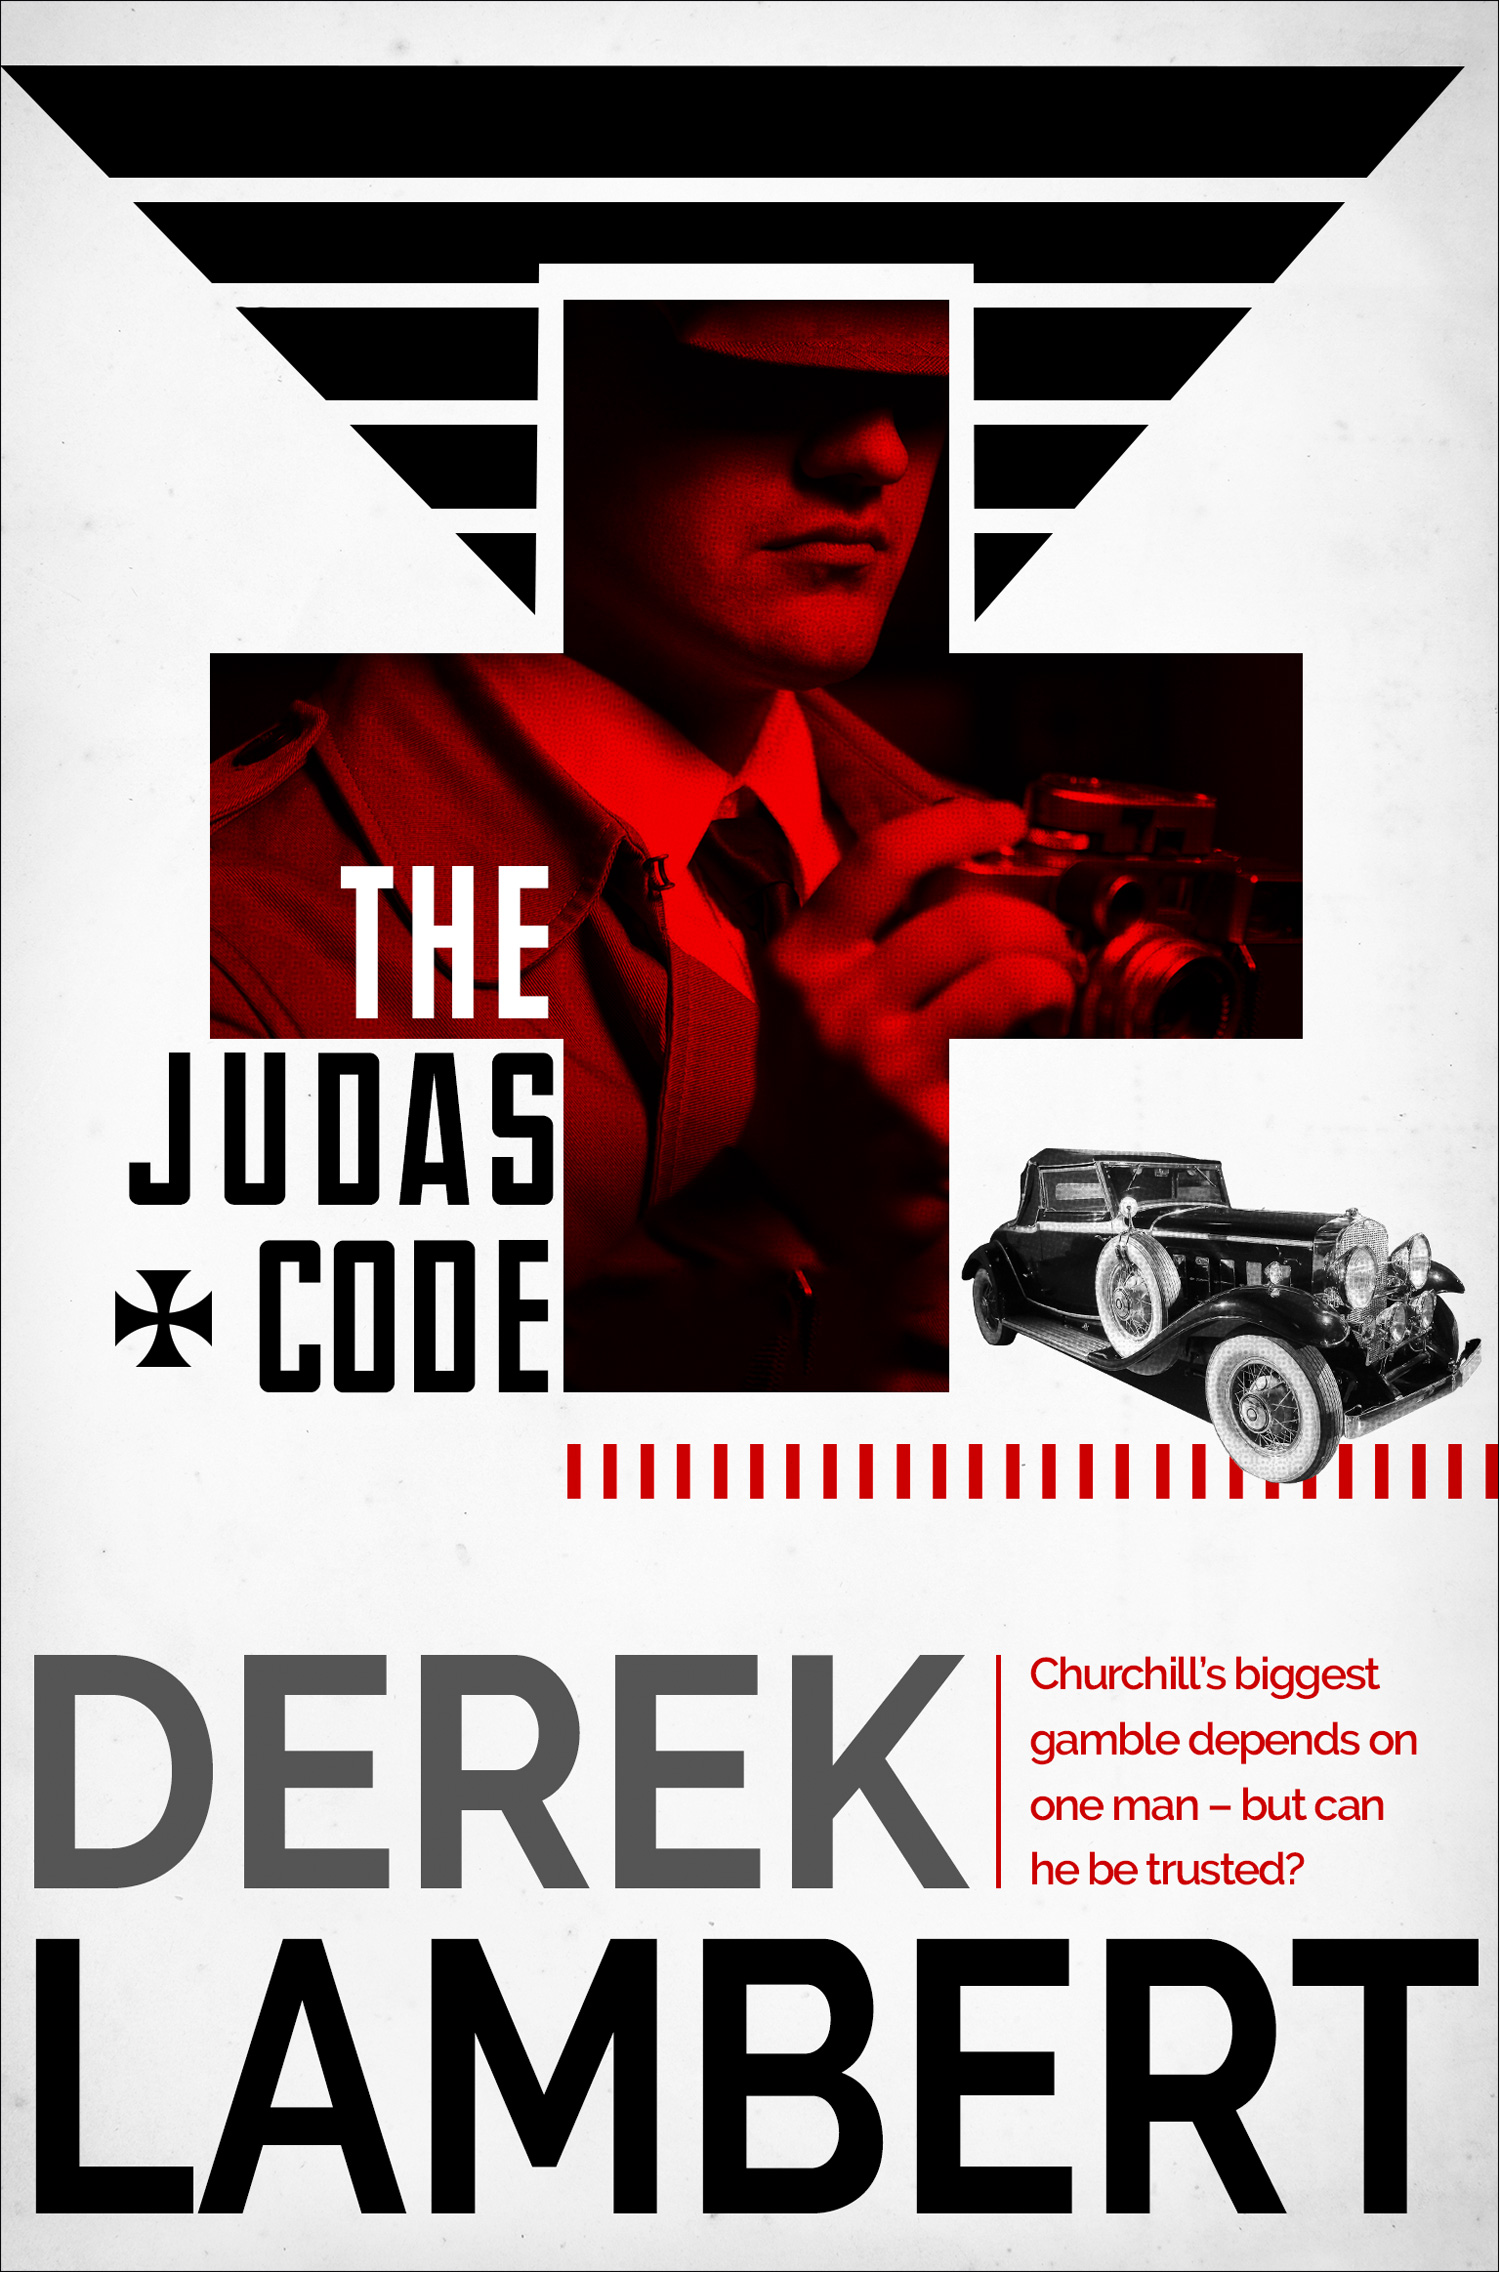 Derek Lambert The Judas Code